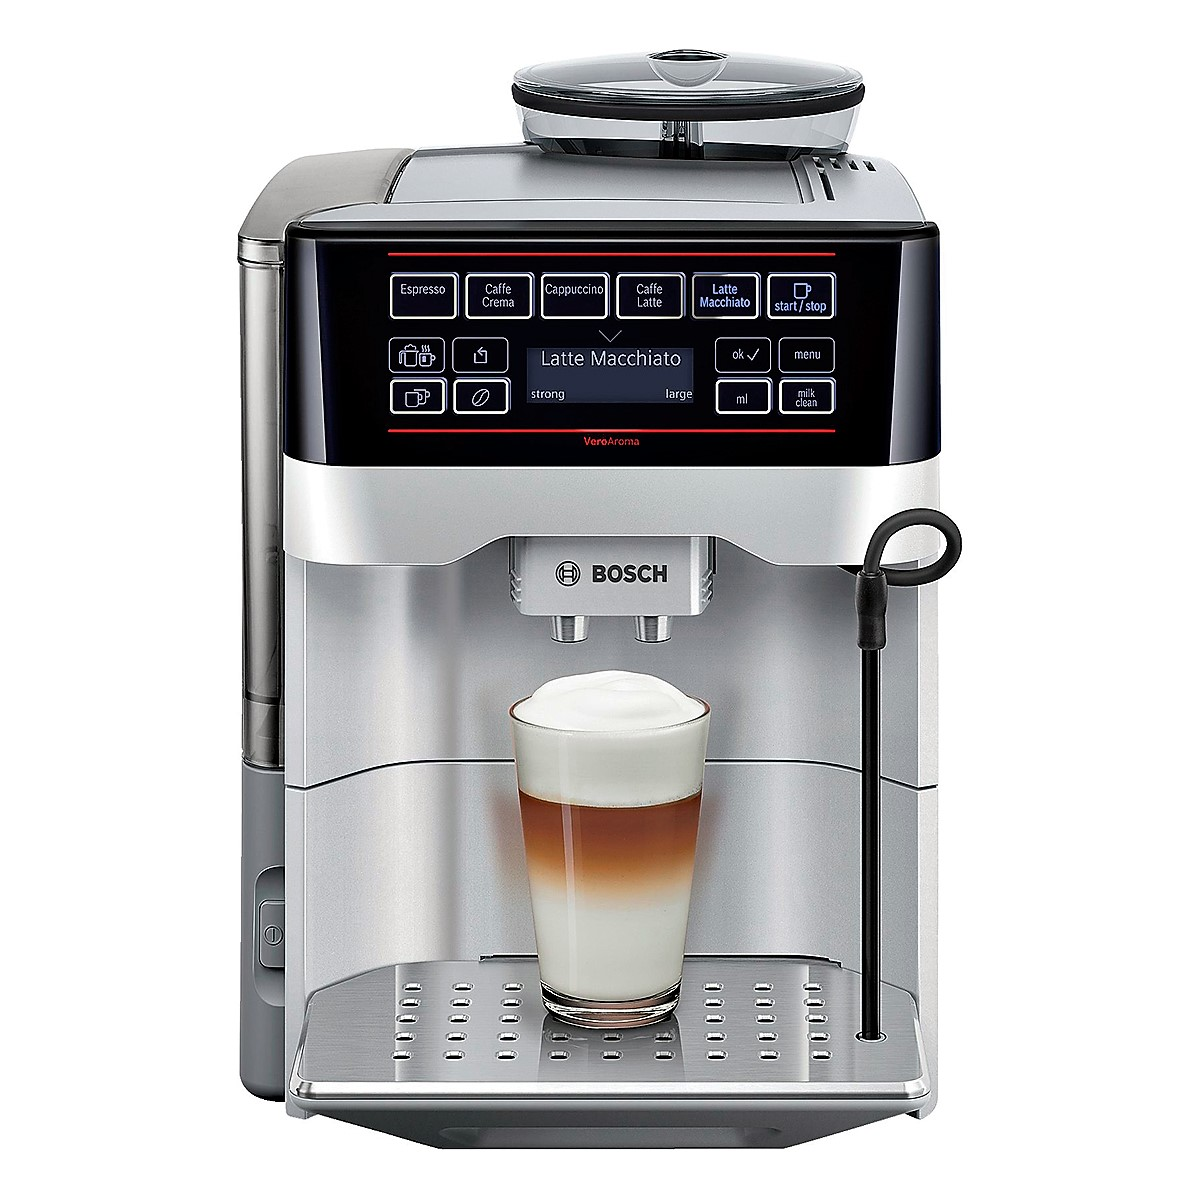 Automatic coffee machine Veroaroma 300